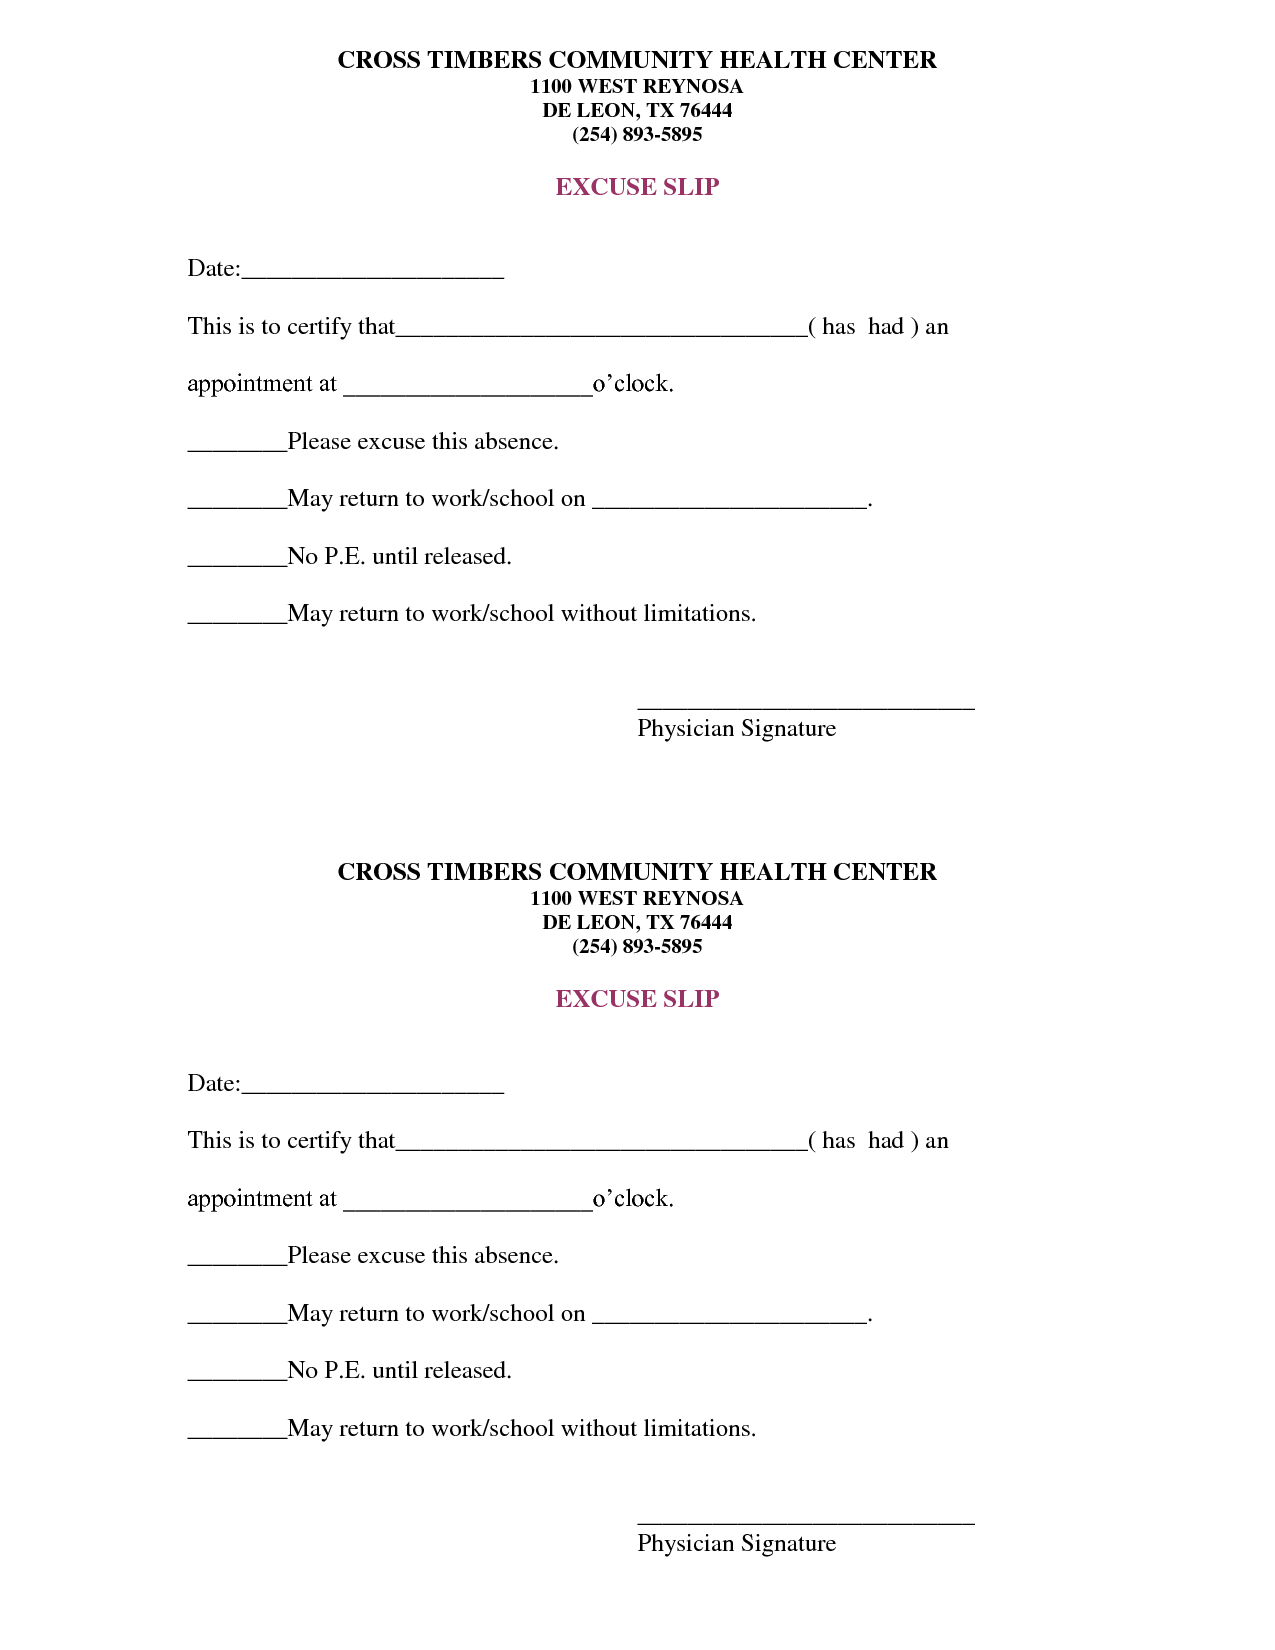 Free Doctors Note Template | Scope Of Work Template | On The Run - Doctor Notes For Free Printable